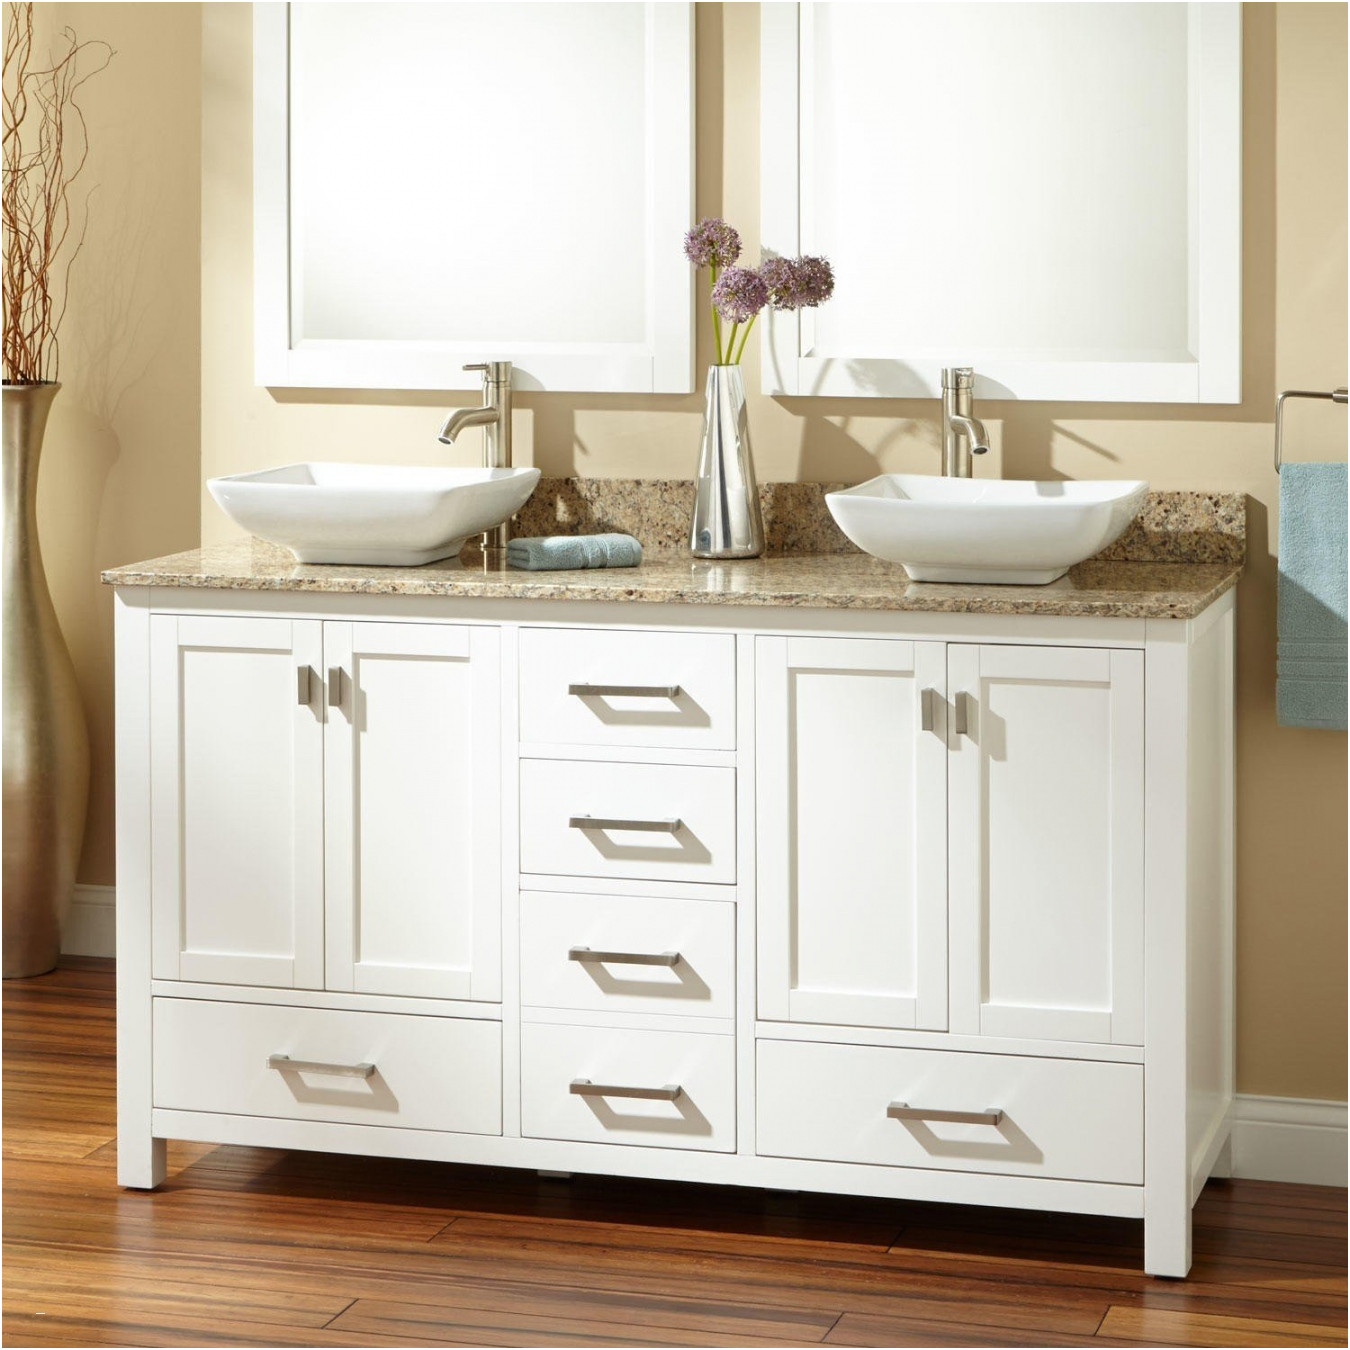 Awesome Bathroom Cabinets for Bowl Sinks